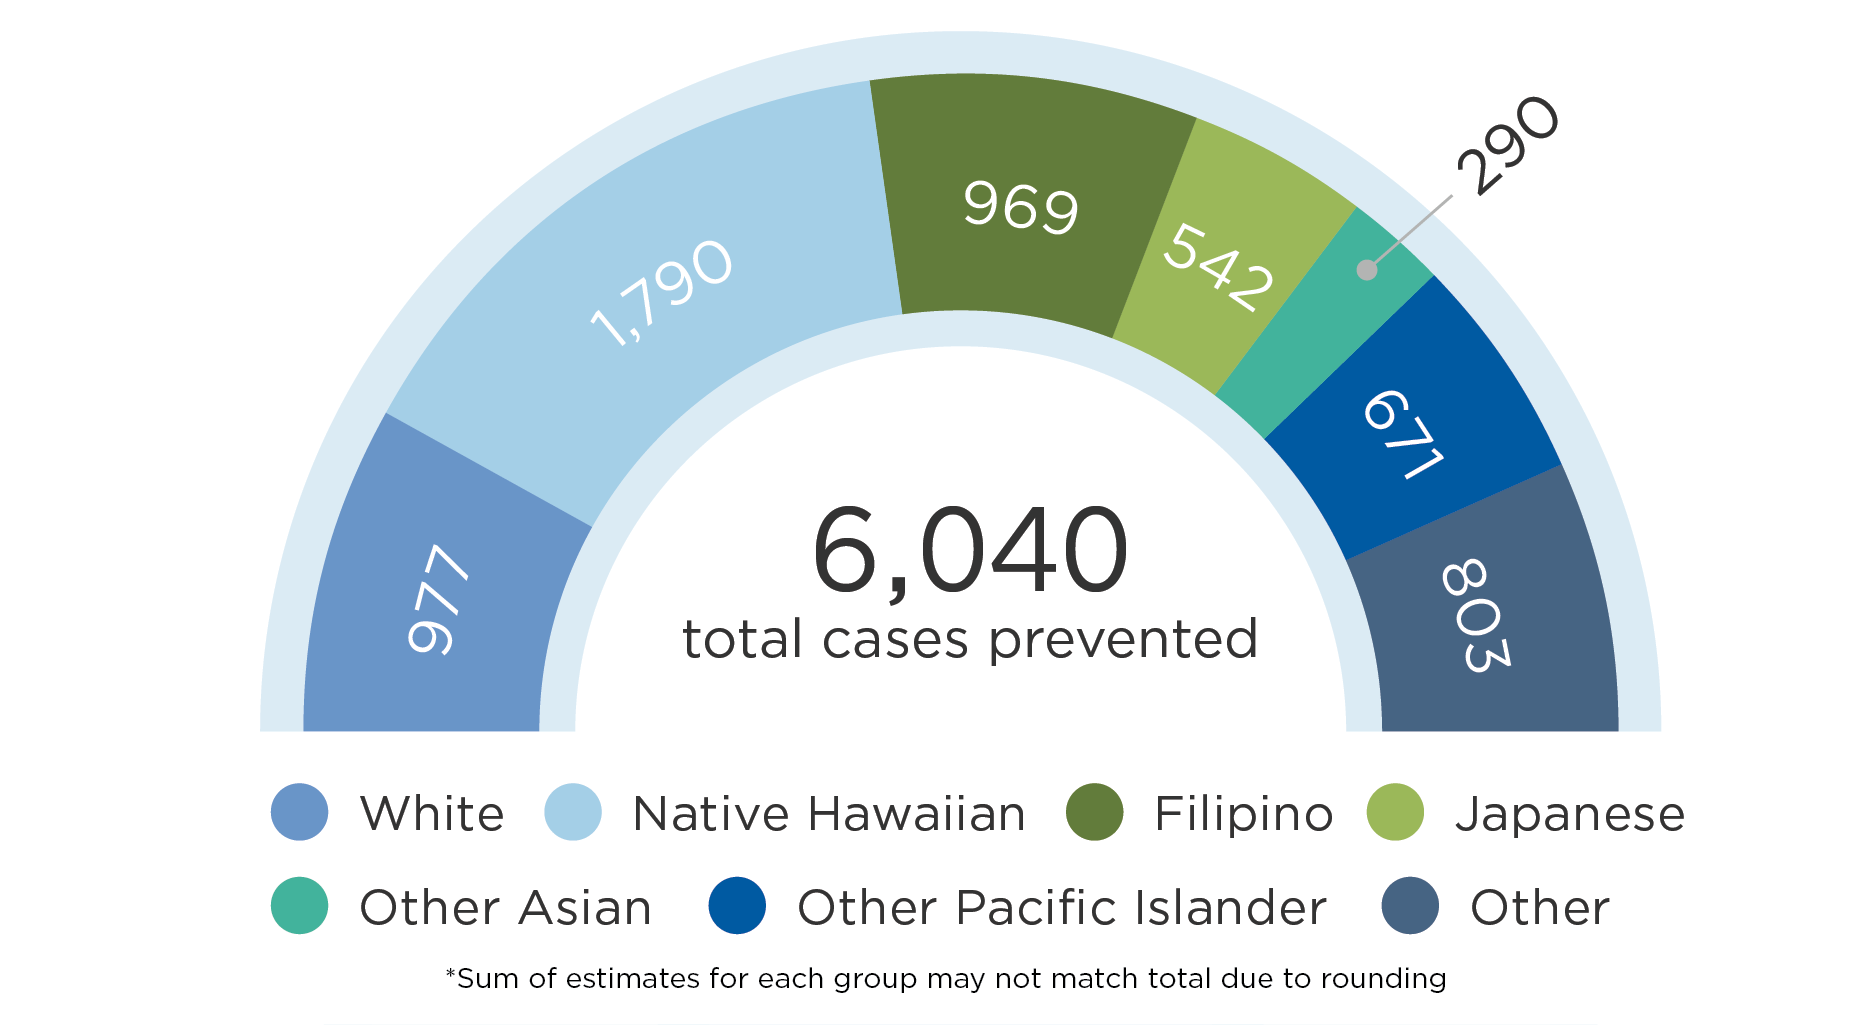 In 2027, 977 cases of obesity would be prevented among White residents; 1,790 cases of obesity would be prevented among Native Hawaiian residents; 969 cases of obesity would be prevented among Filipino residents; 542 cases of obesity would be prevented among Japanese residents; 290 cases of obesity would be prevented among Other Asians residents; 671 cases of obesity would be prevented among Other Pacific Islander residents; and 803 cases of obesity would be prevented among residents of other races